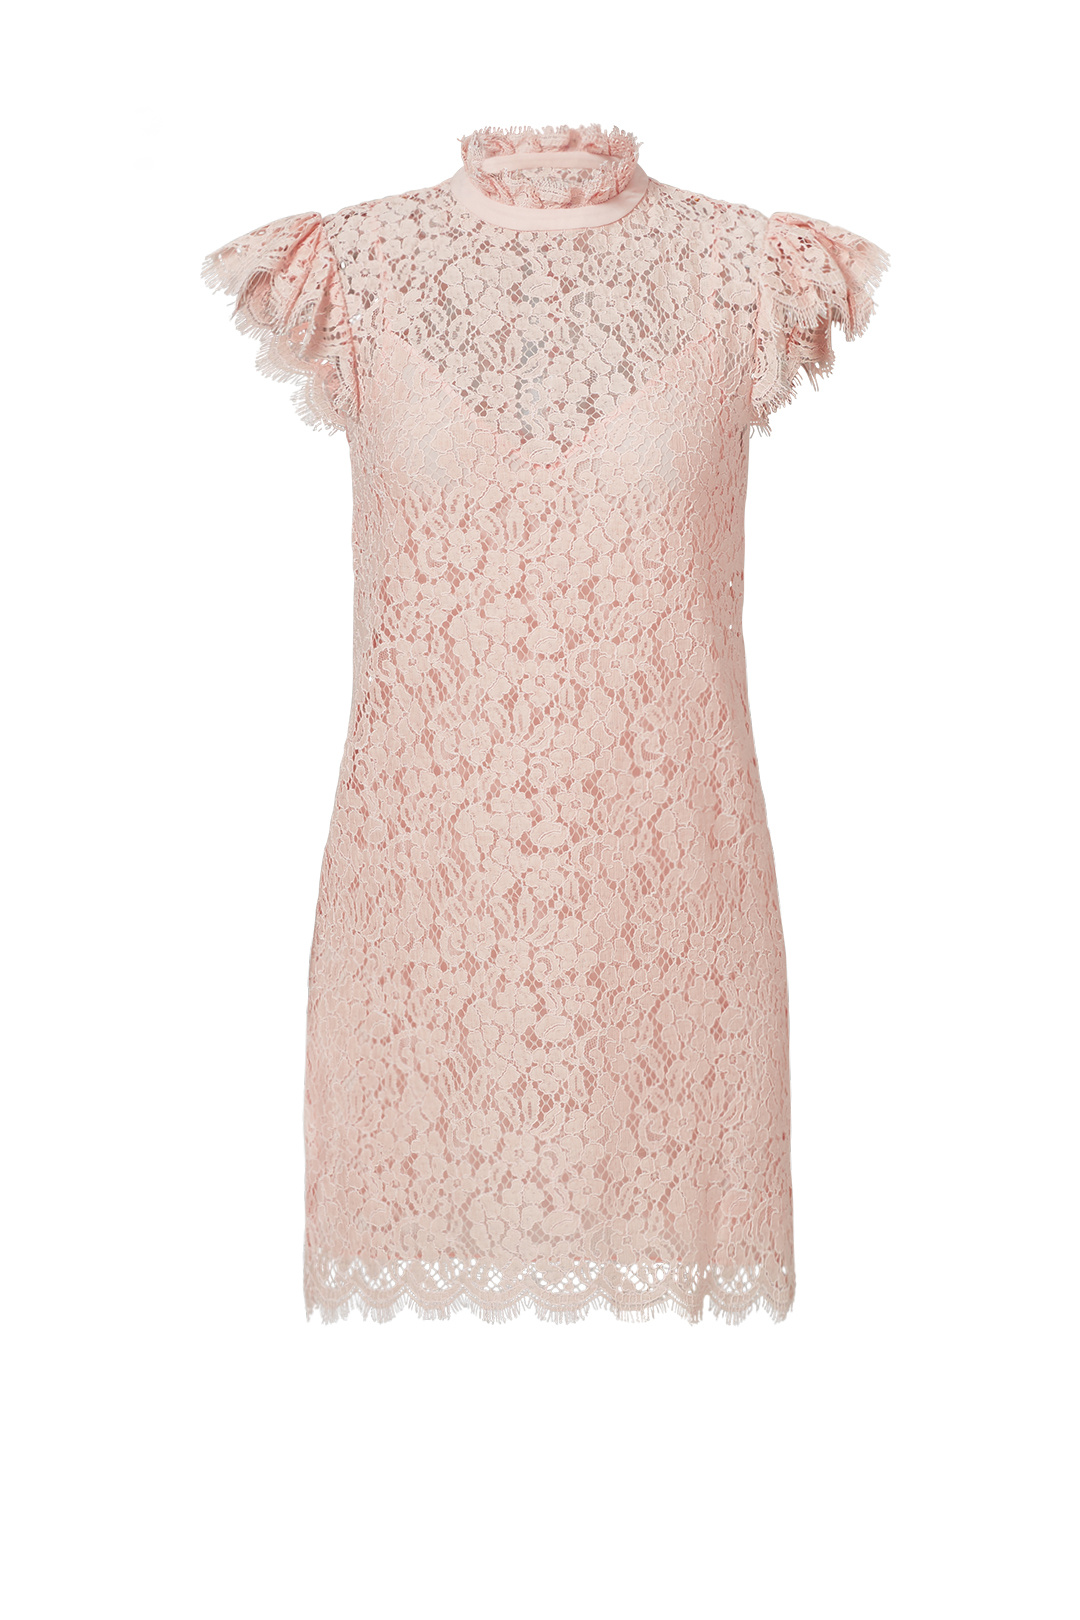 753d8ea5897e Details about Rachel Zoe Pink Women s Size 2 Mock Neck Floral Lace Sheath  Dress  396-  376